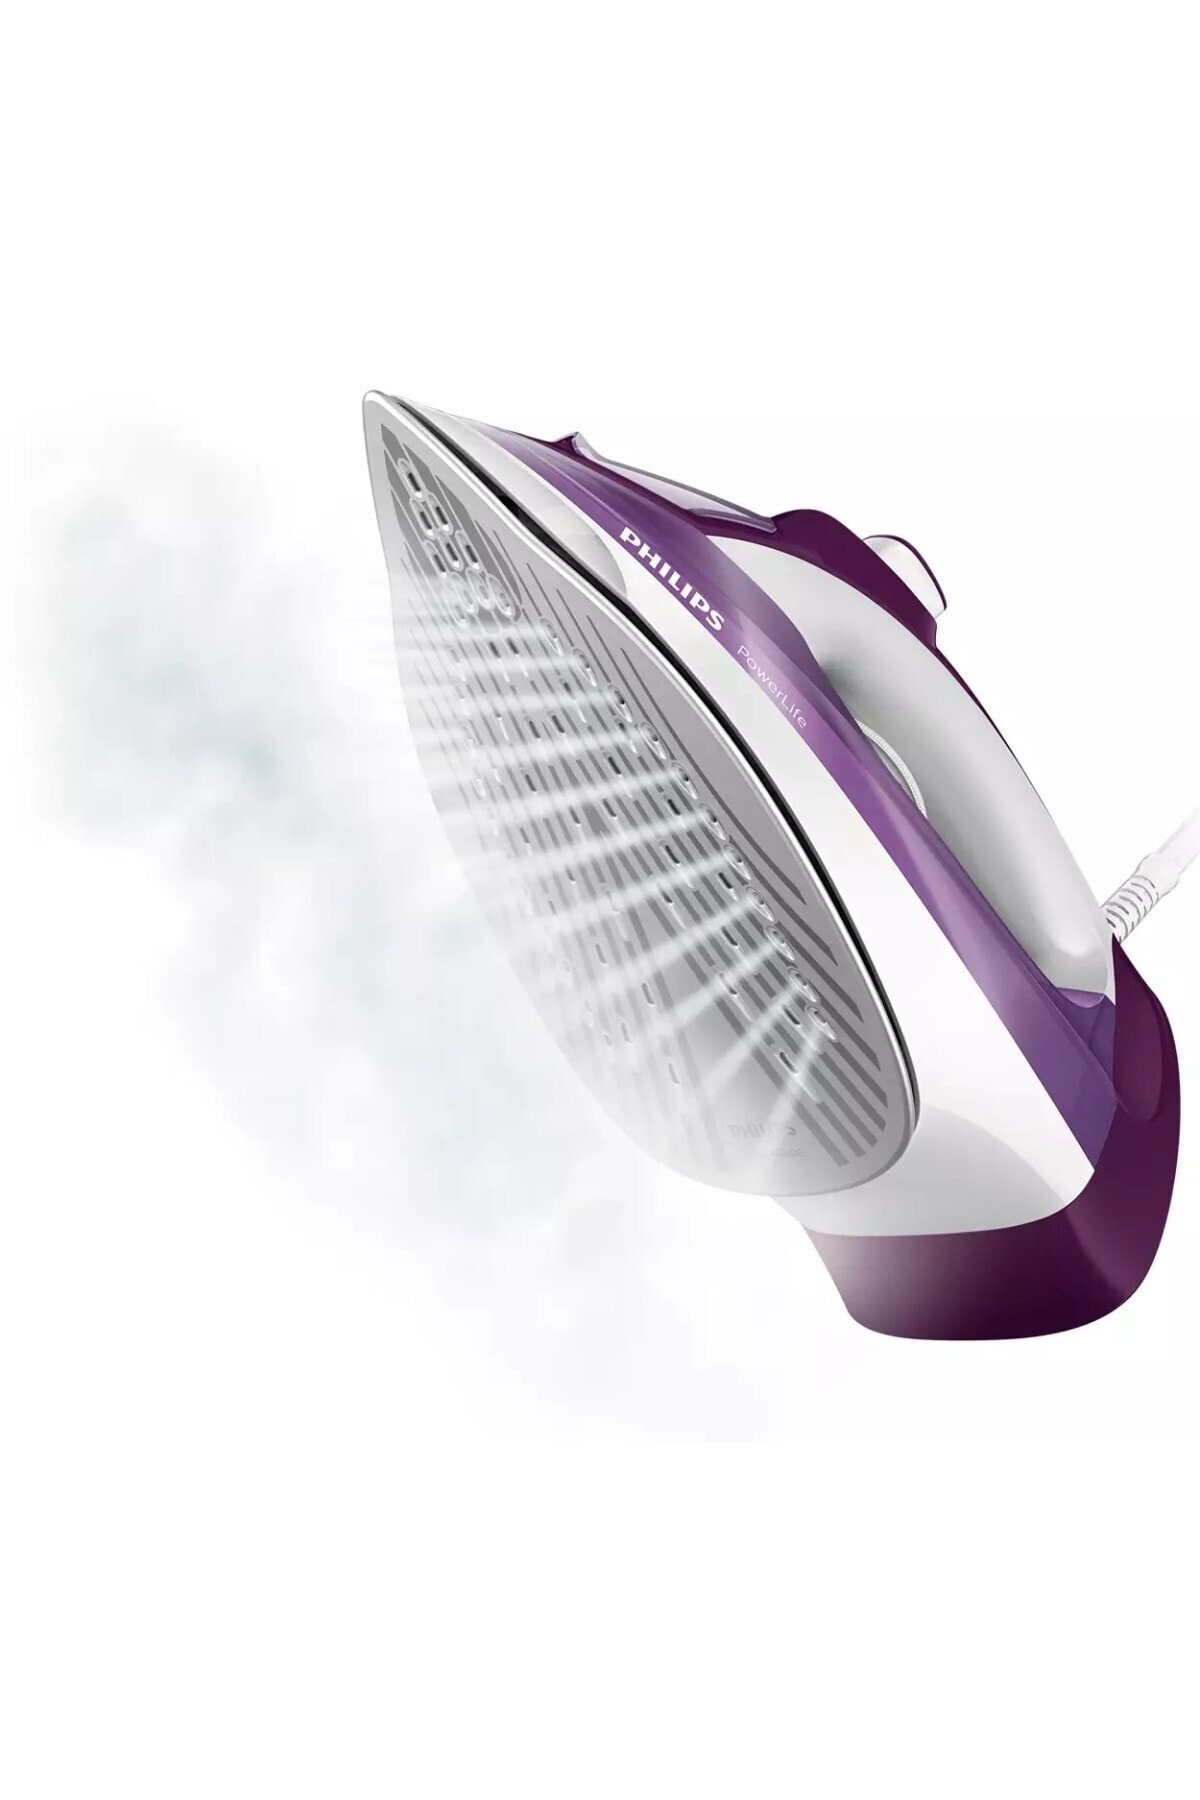 Philips GC2995/30 Powerlife Buharlı Ütü 2400 w 2